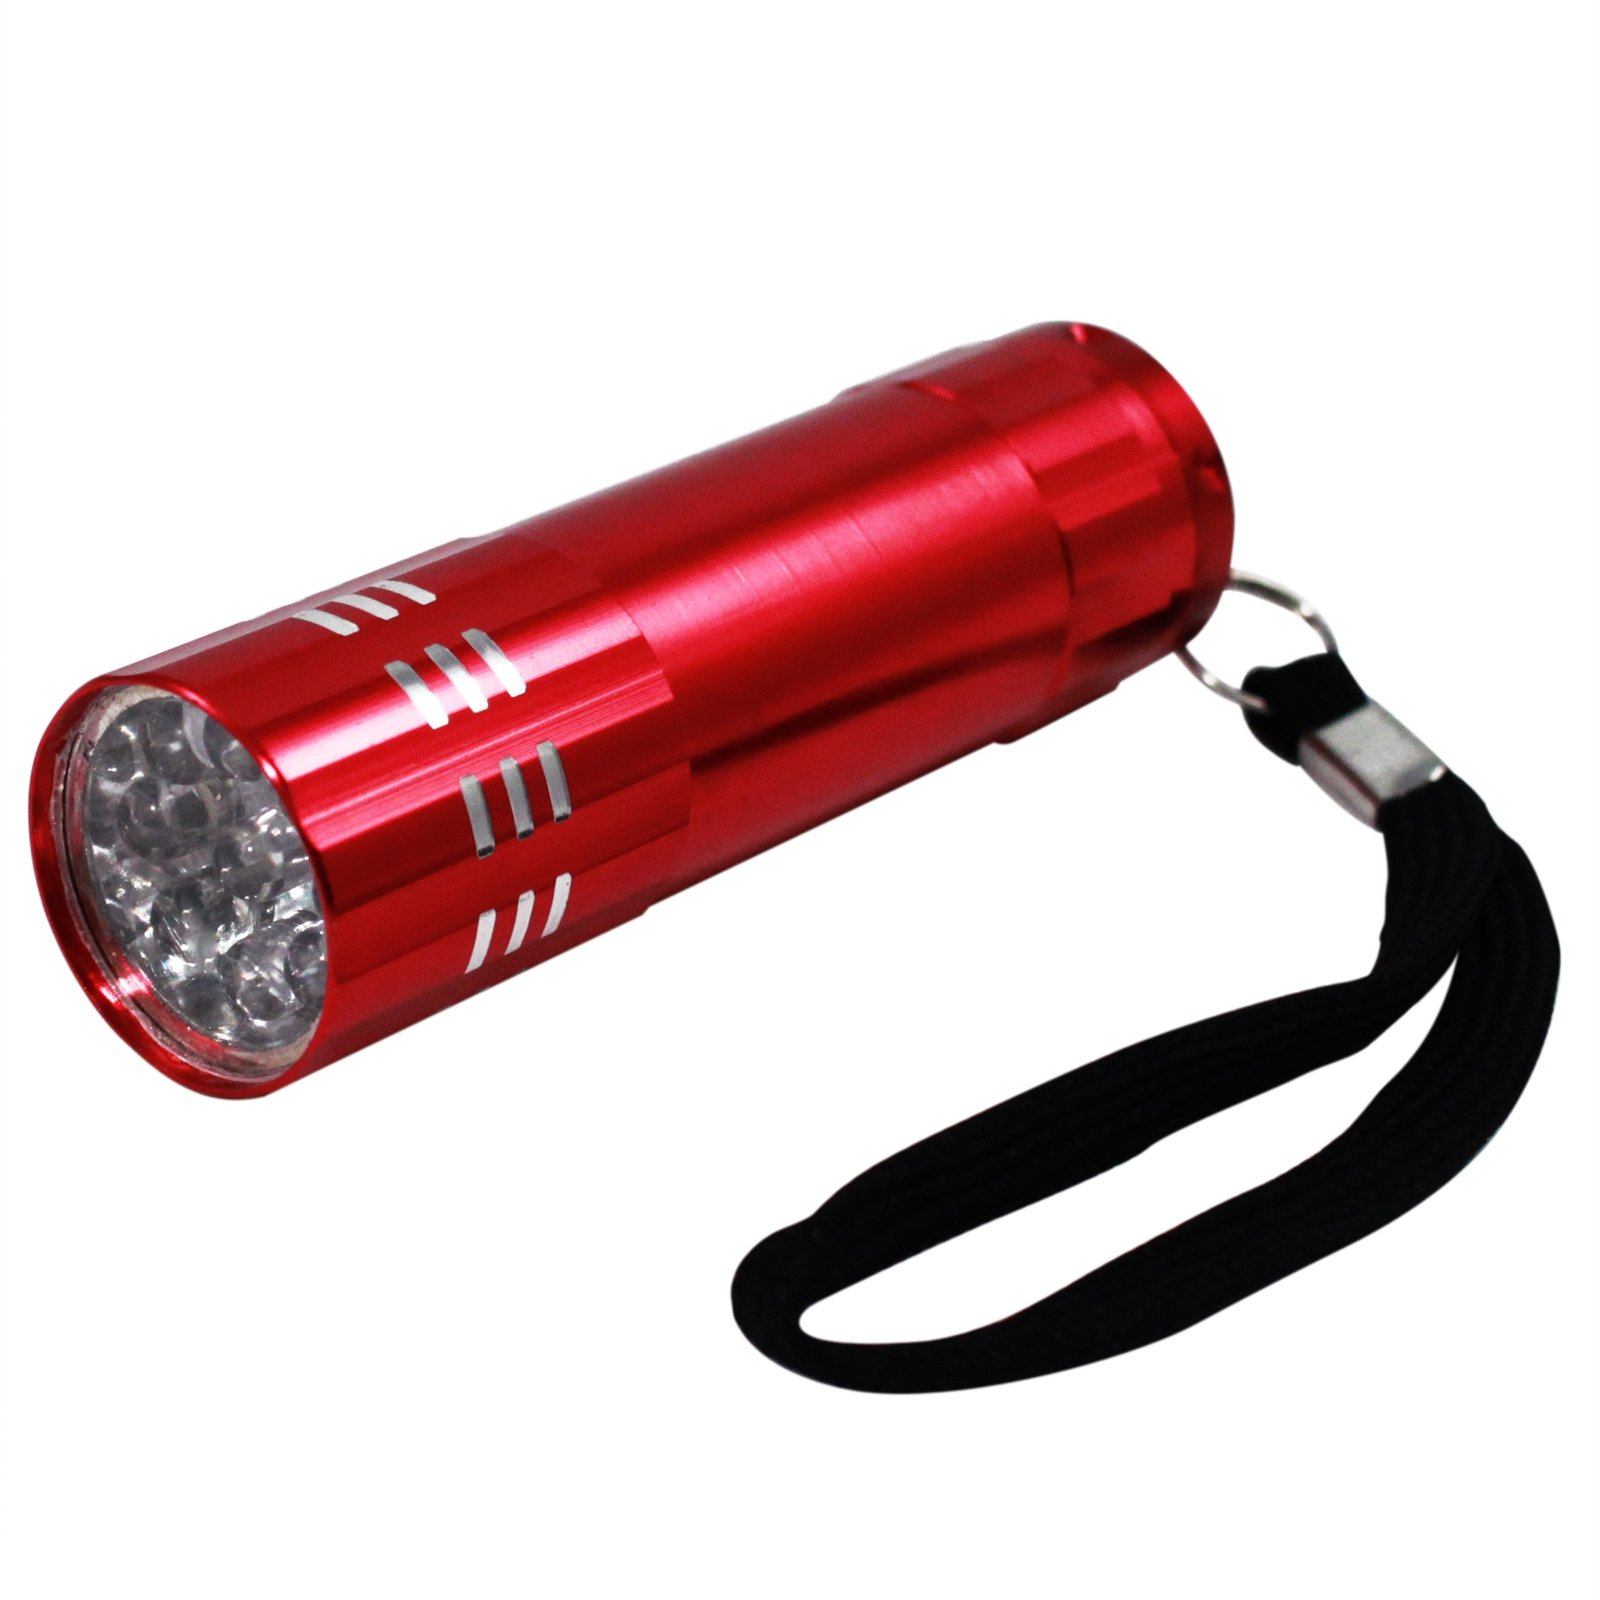 9 LED Super Bright Portable Red Mini Flashlight with Lanyard - 4 Pack